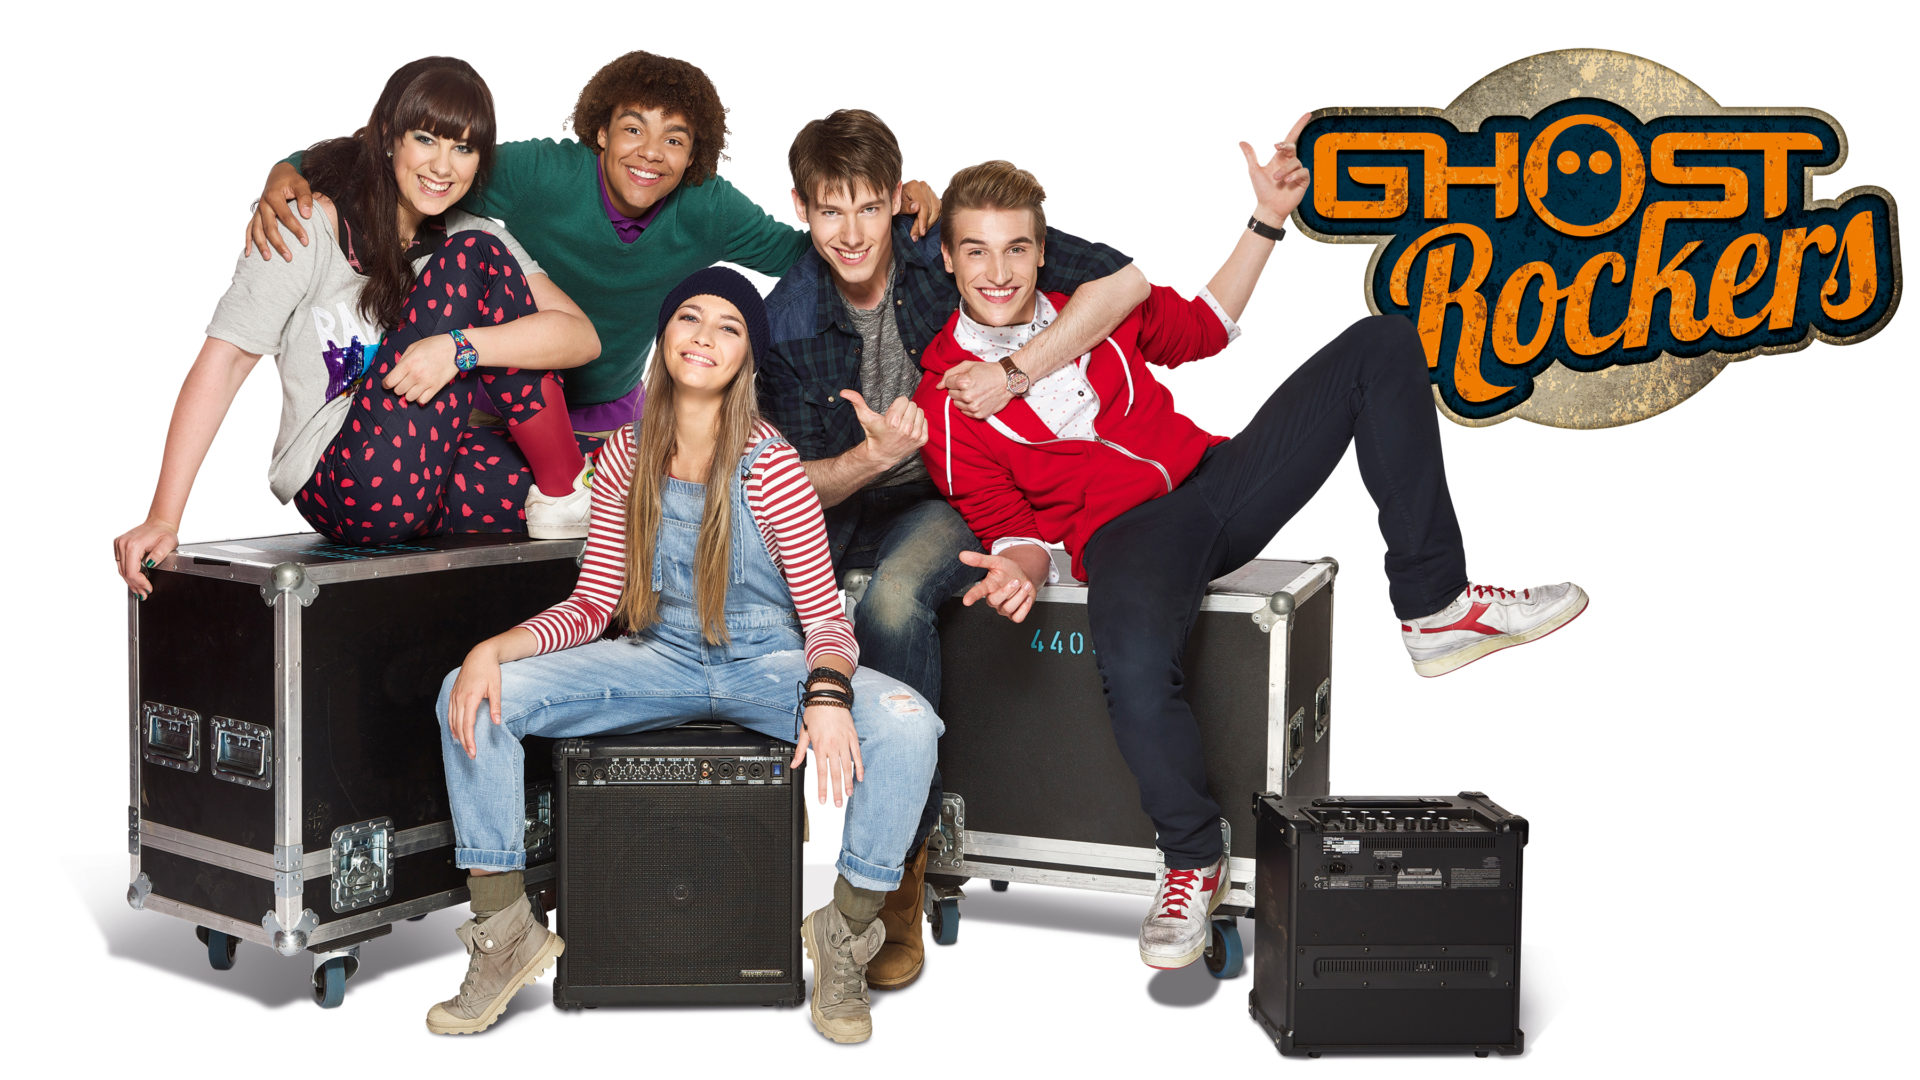 TV: Ghostrockers S03